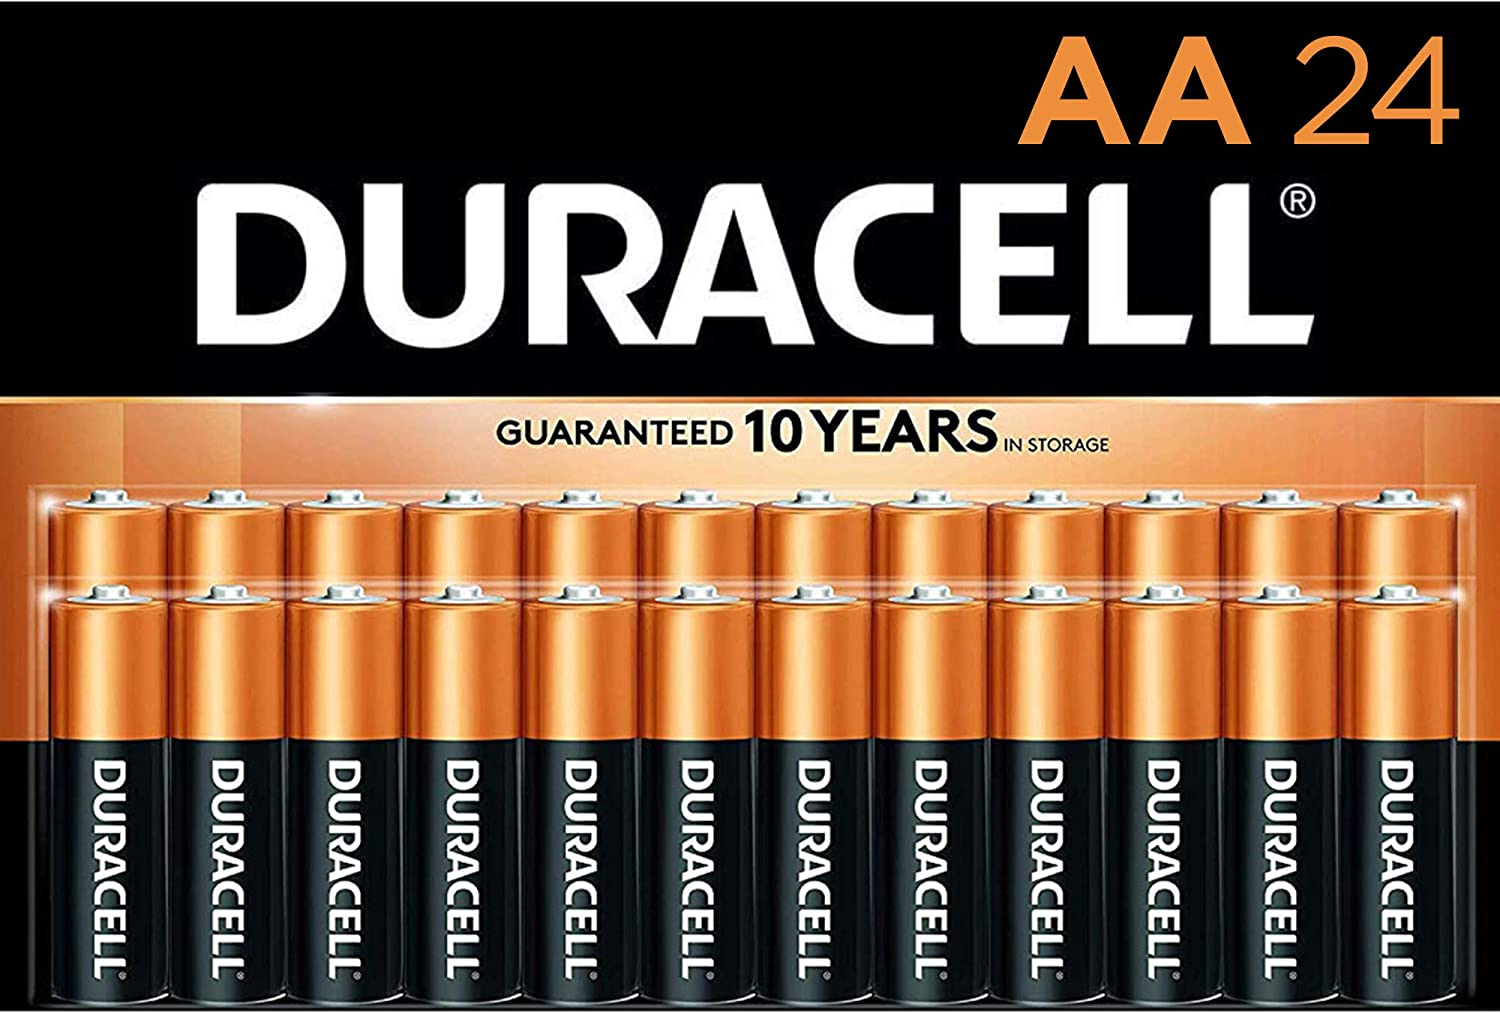 Duracell - CopperTop AA Alkaline Batteries New Orleans Mall long lasting all-p Ranking integrated 1st place